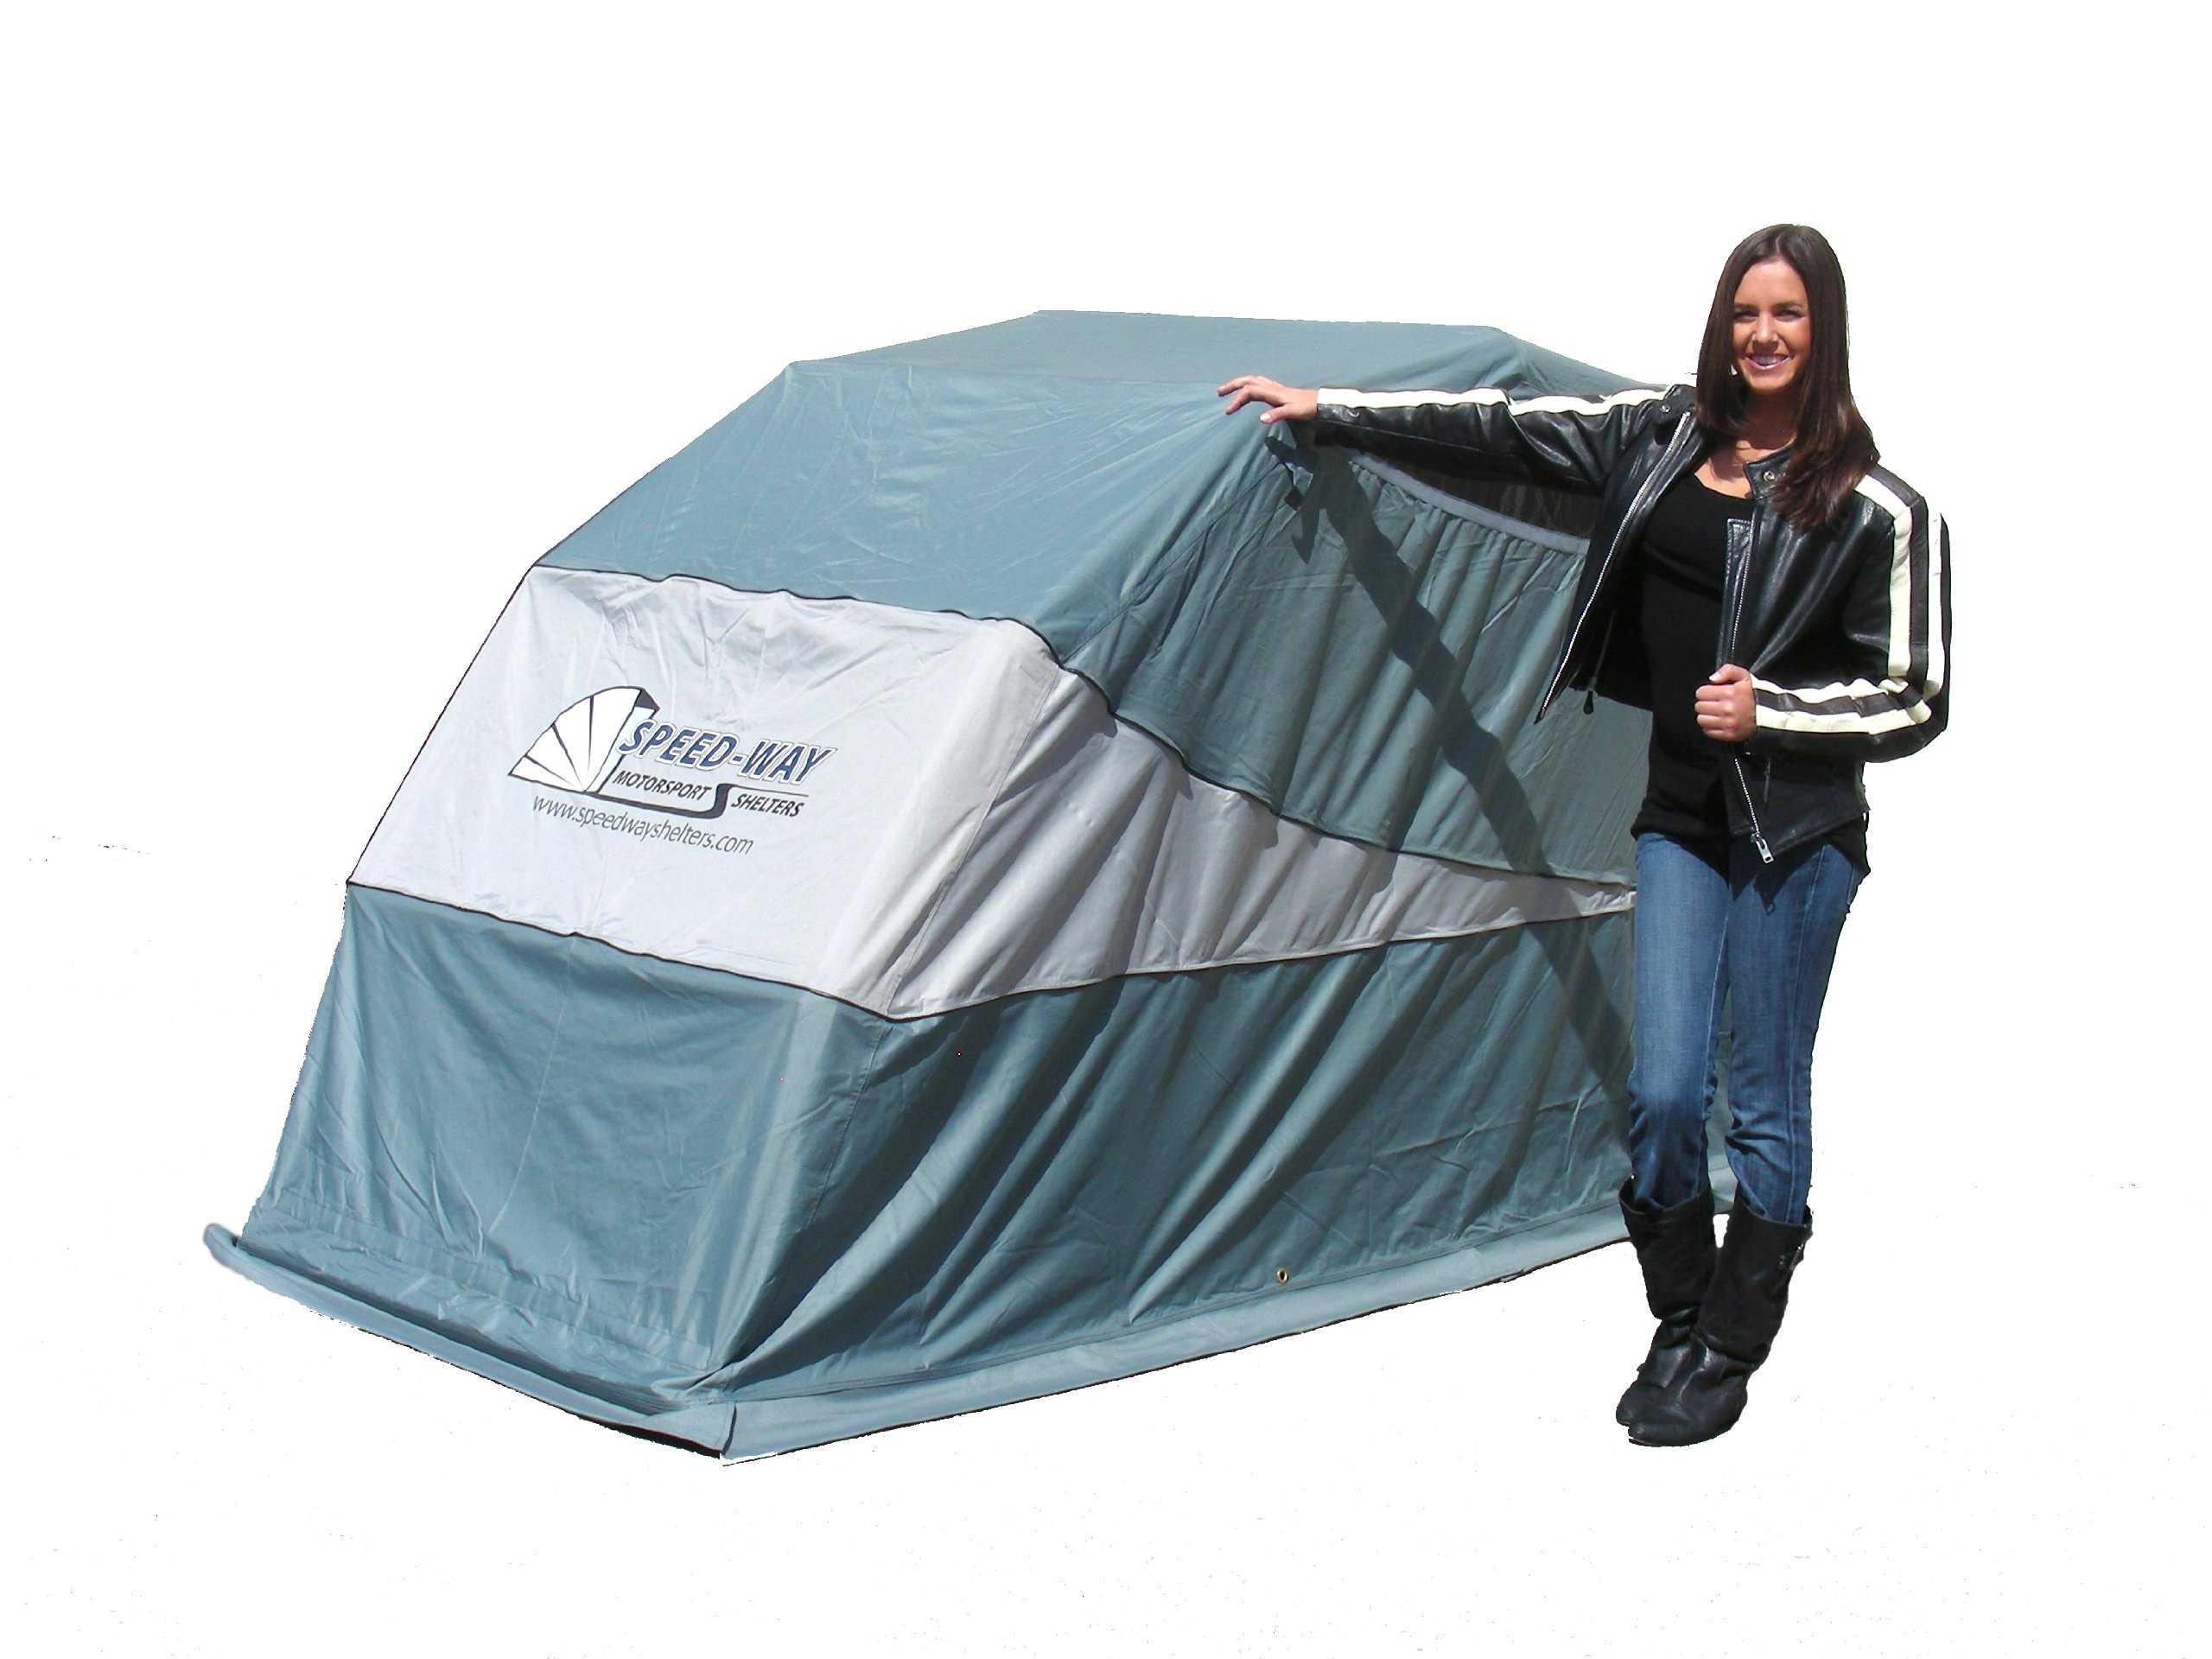 Speed-Way MTS-GRY Grey Standard/Small Sport Shelter by Speed-Way